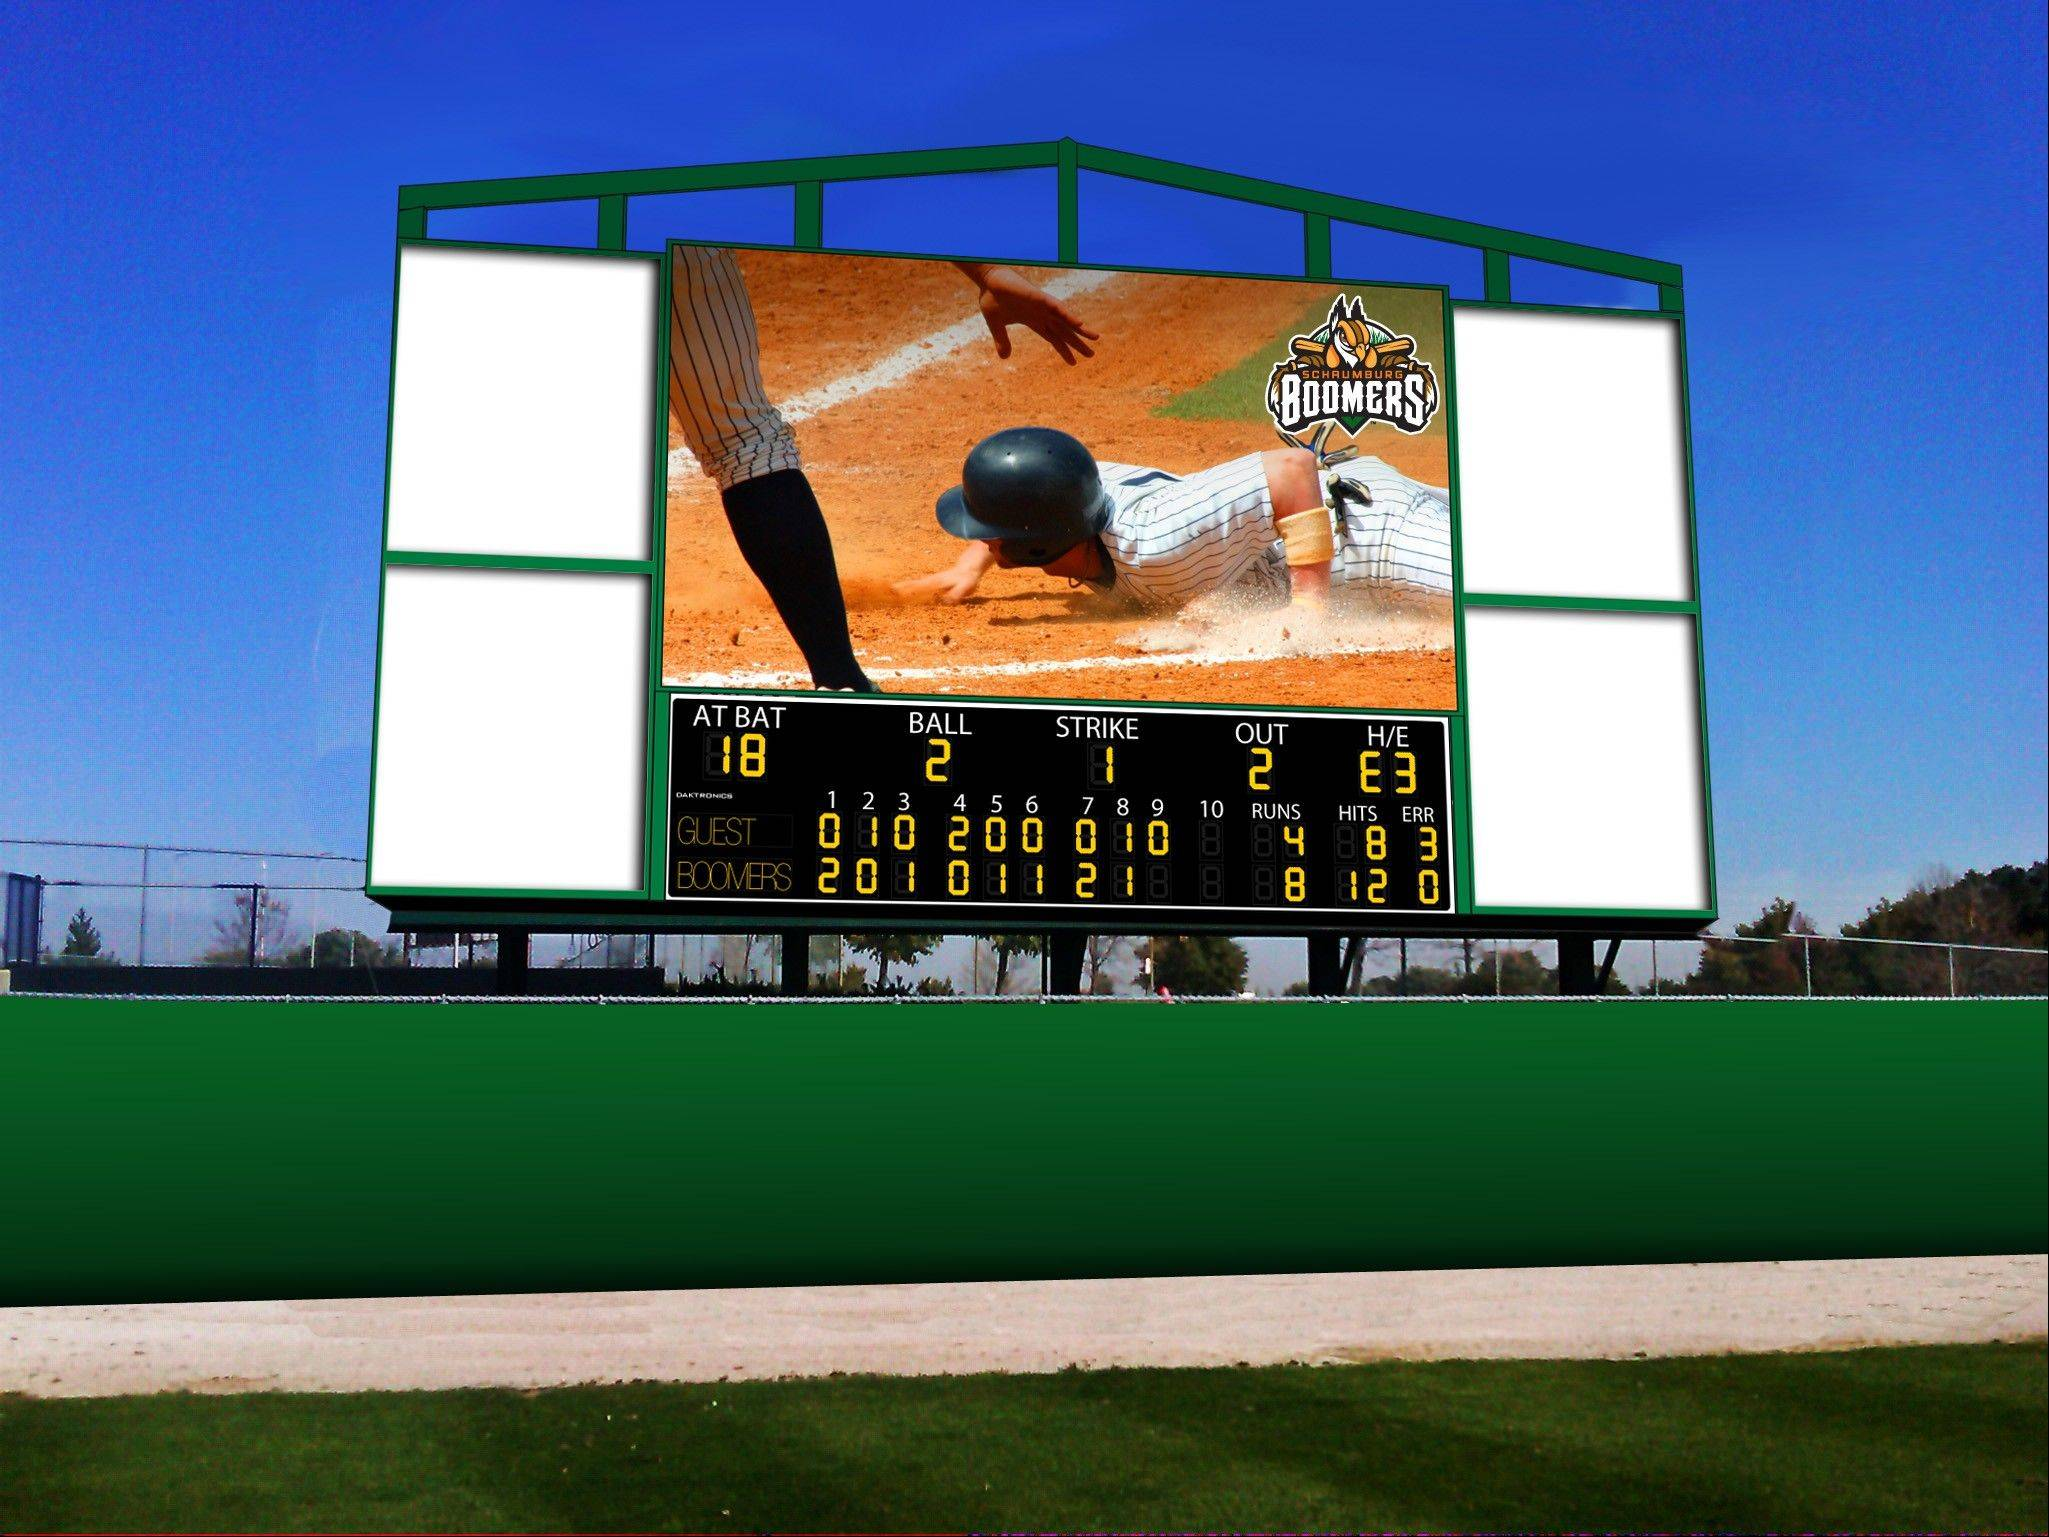 Schaumburg Boomers to add video scoreboard